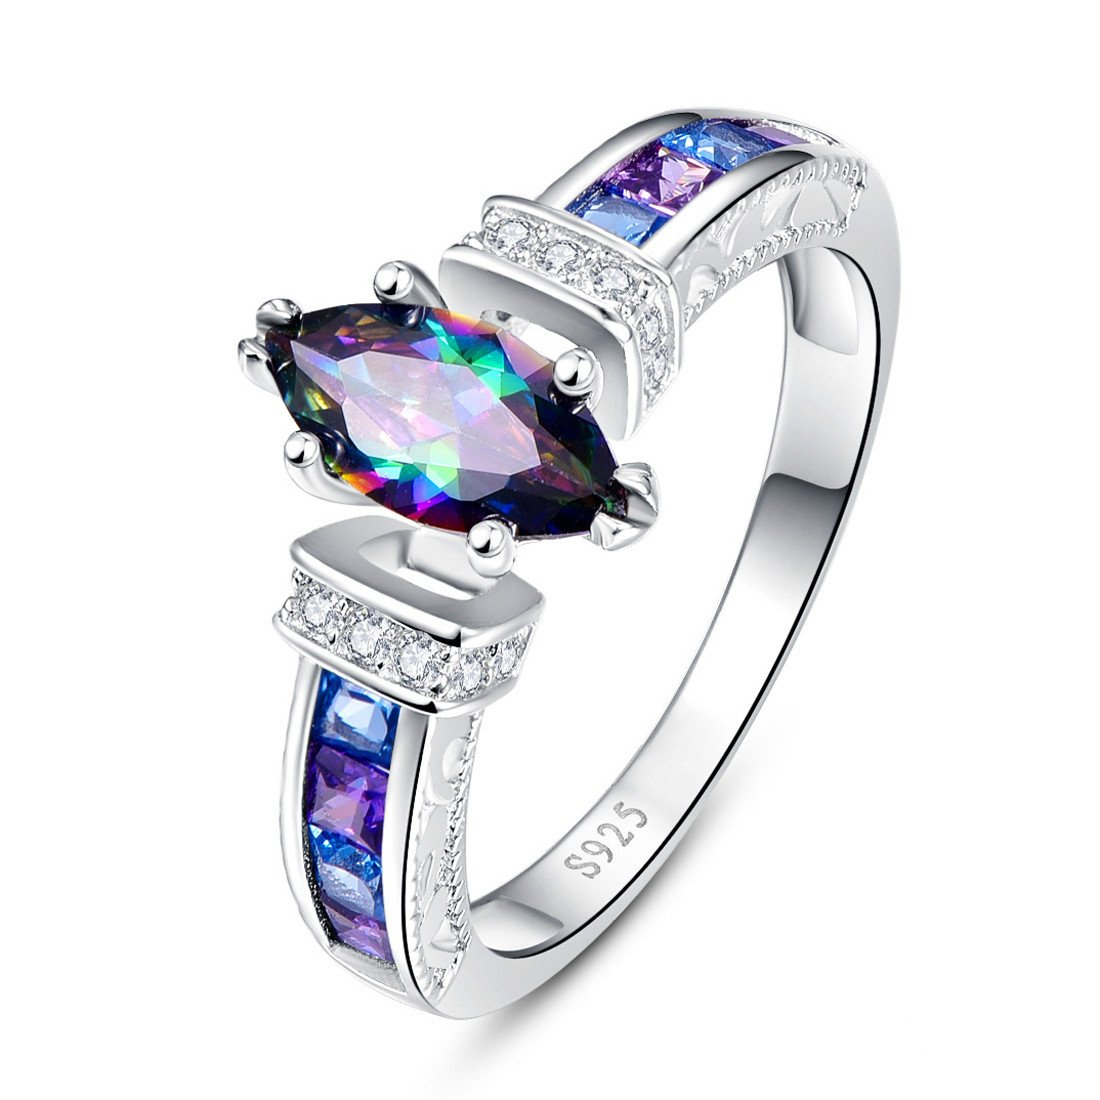 Jrose 1.45ct Created Marquise-Cut Mystic Rainbow Topaz Engagement Ring for Her in 925 Sterling Silver